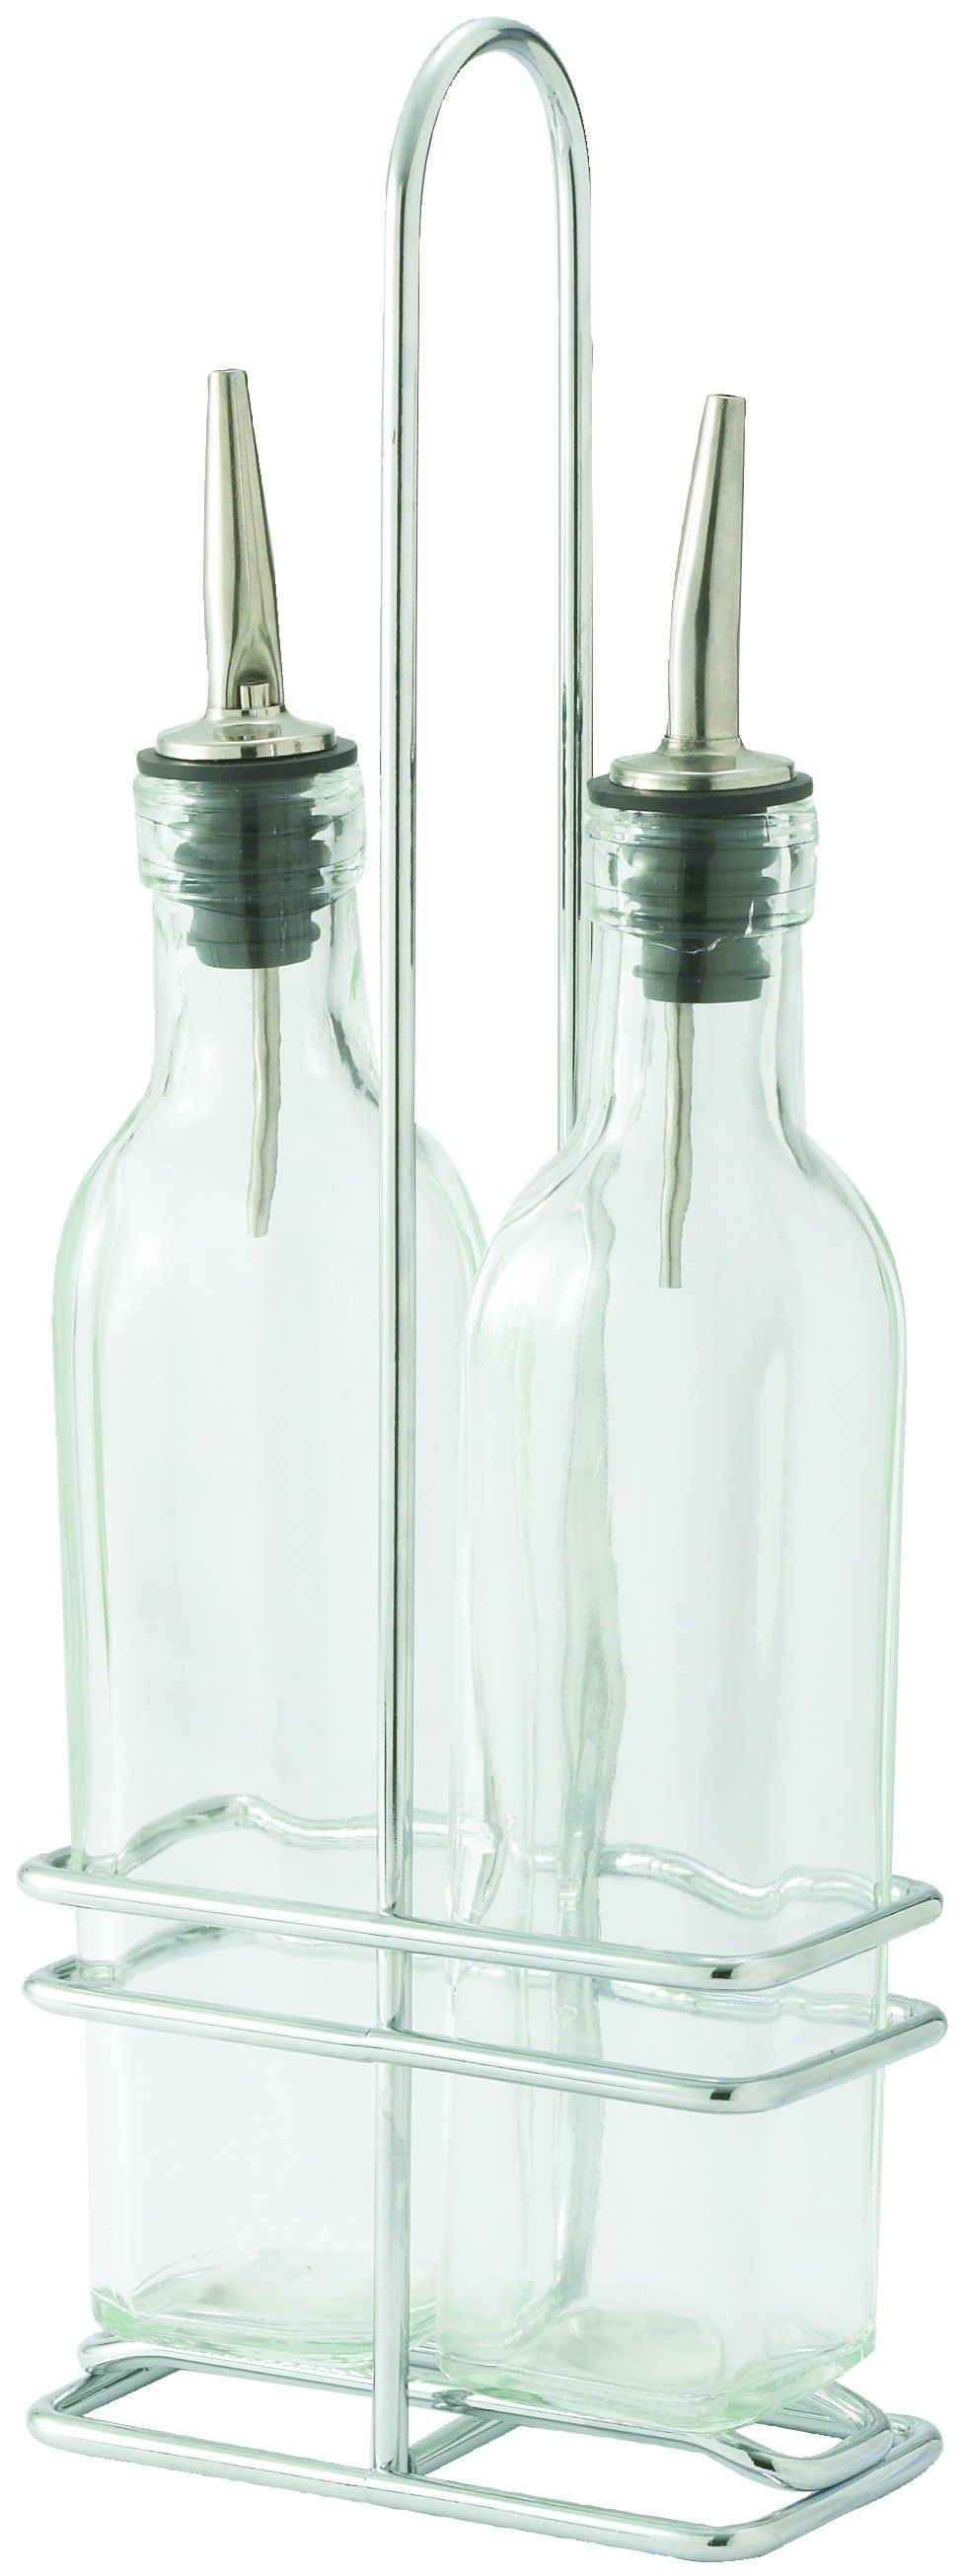 Oil/Vinegar Cruet Set (Two 8 Oz. Cruet With Pourers + One Rack)